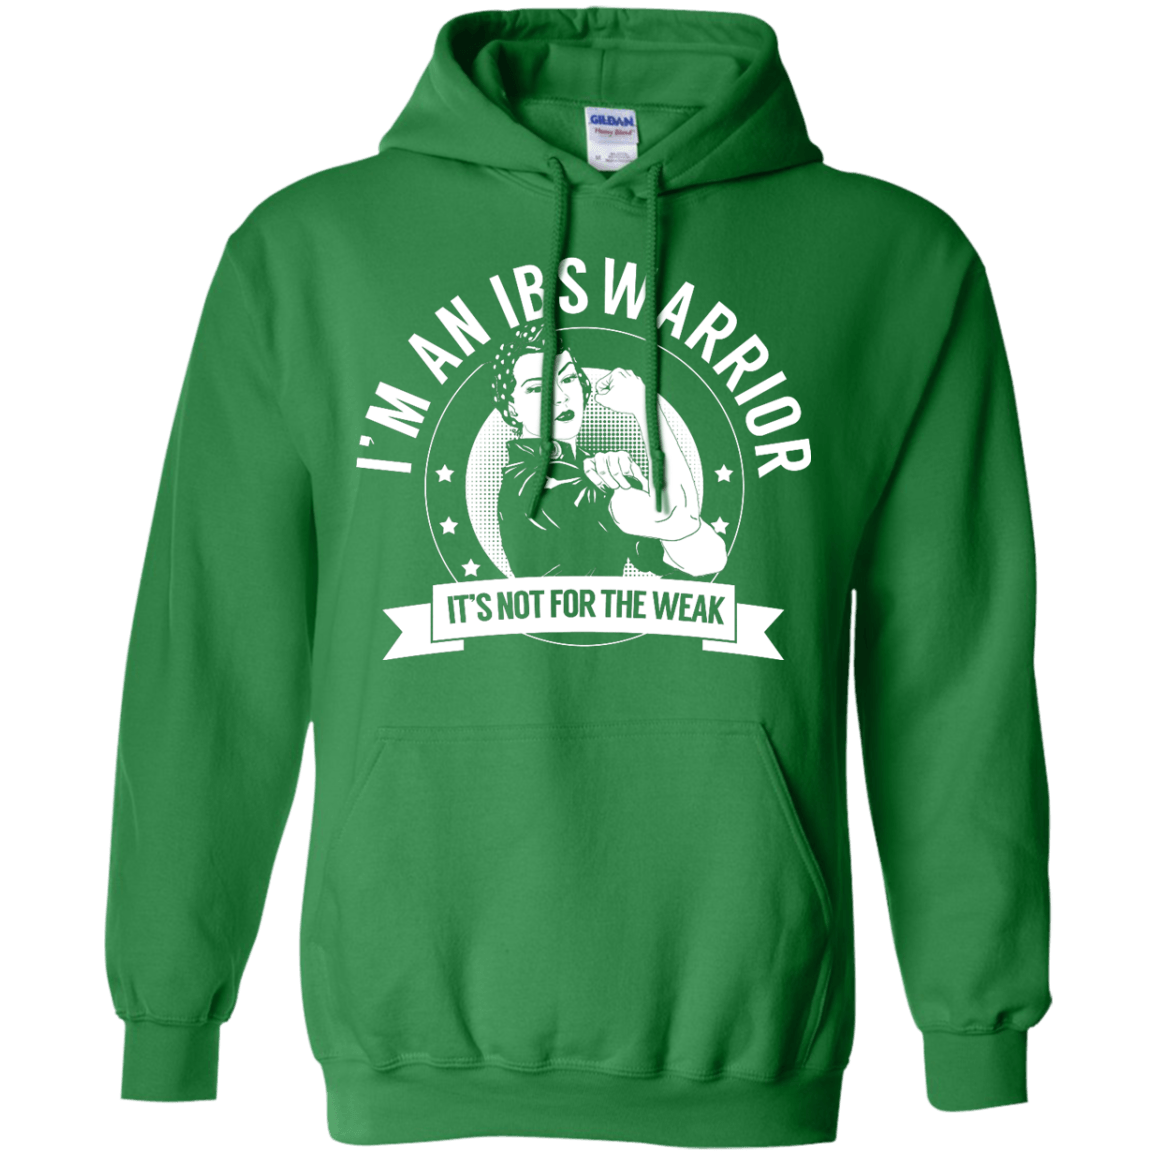 Irritable Bowel Syndrome - IBS Warrior Not for the Weak Pullover Hoodie 8 oz - The Unchargeables